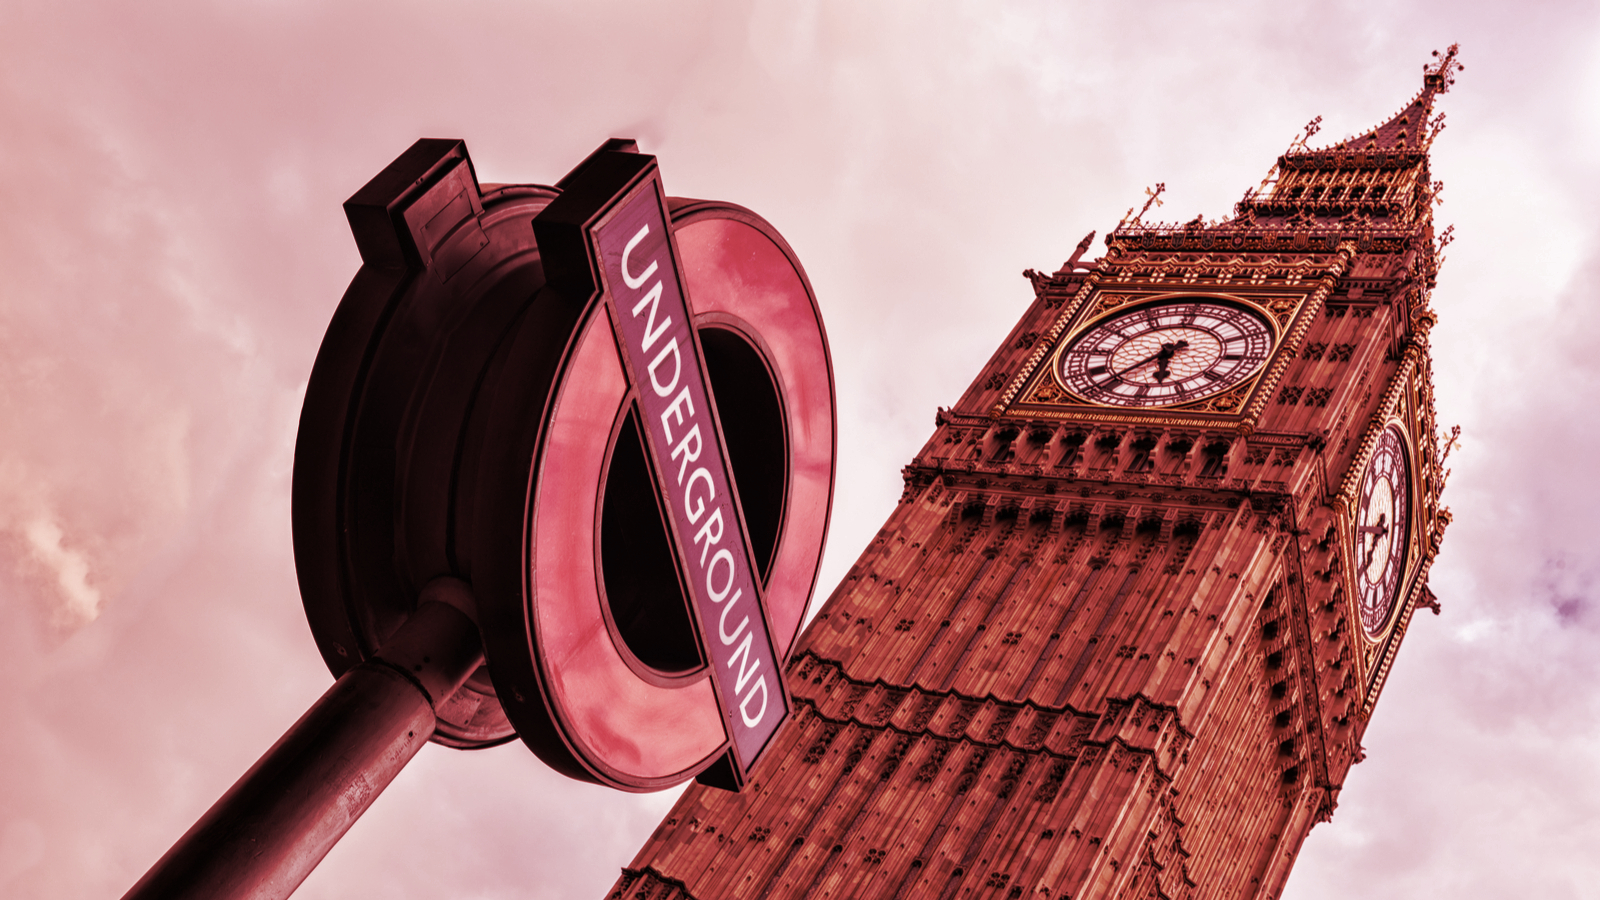 UK Regulator Forces Removal of Crypto Exchange's Bitcoin Ads in London